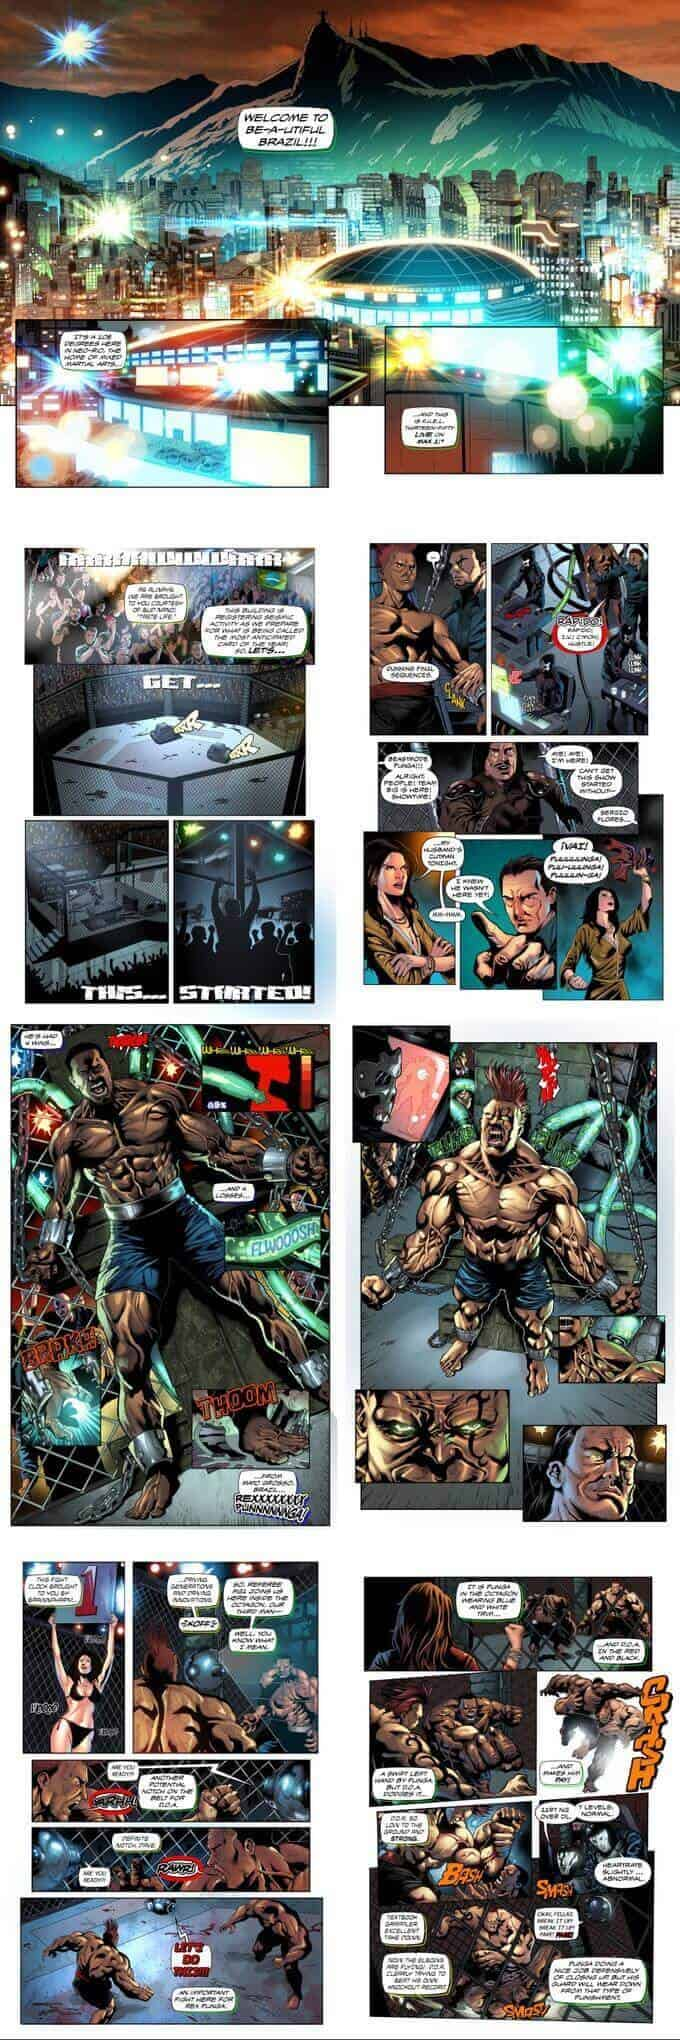 pages from the graphic novel fight of the century